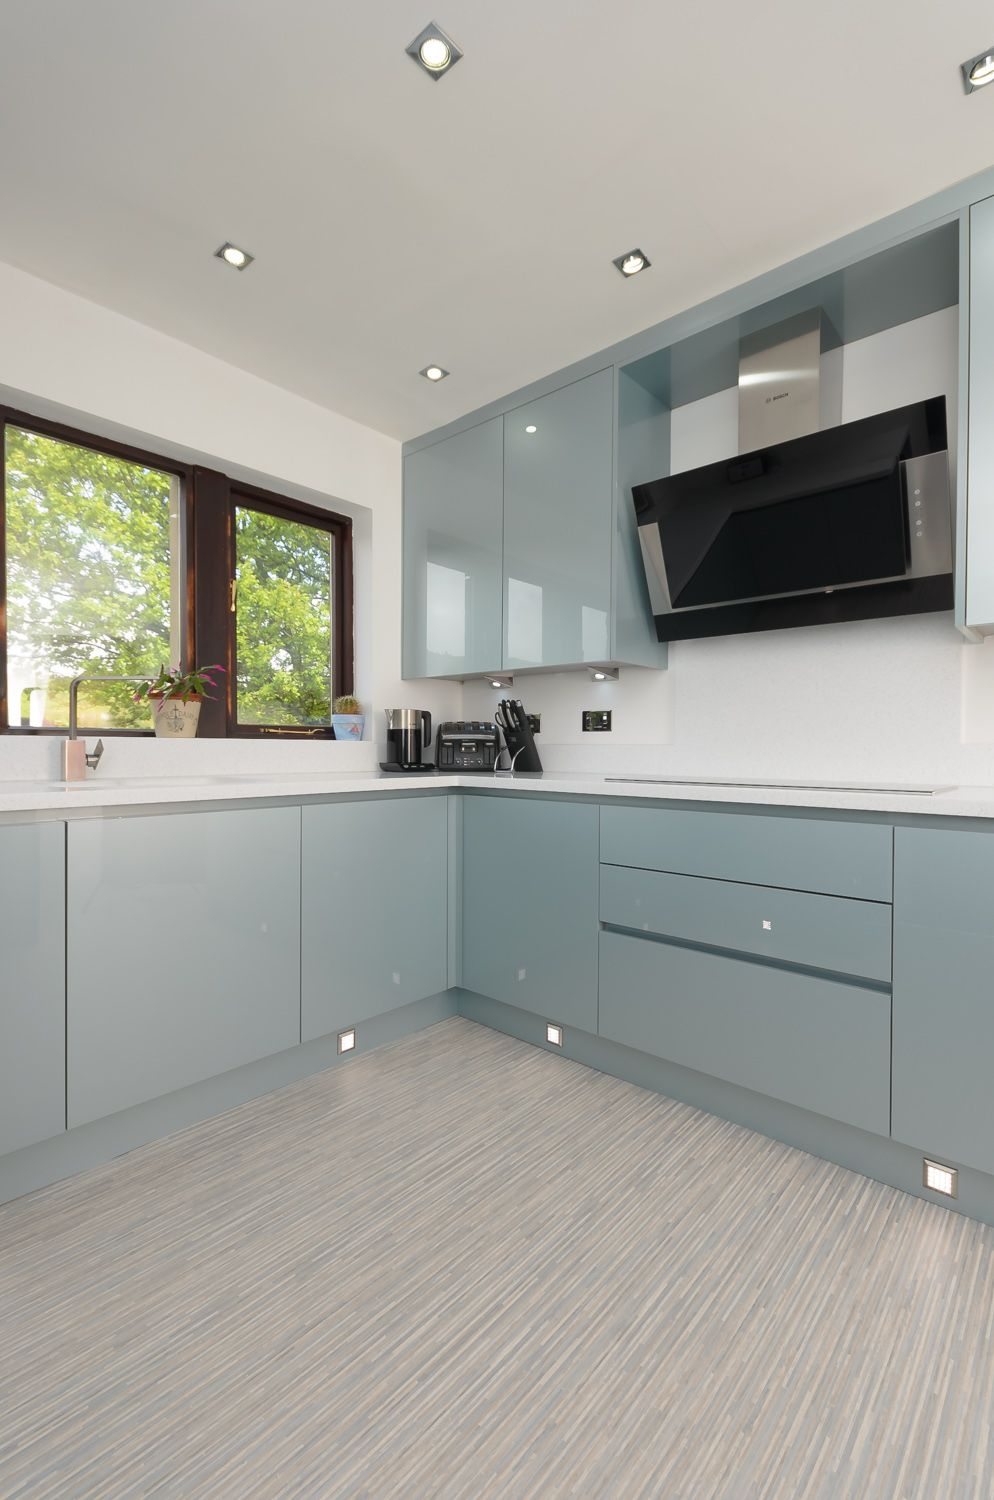 The Doors Are A Handleless Verve Door From M J Designs In Metallic Blue Gloss This Is A Prime Example Kitchen Cabinets Kitchen Lighting Modern Kitchen Design